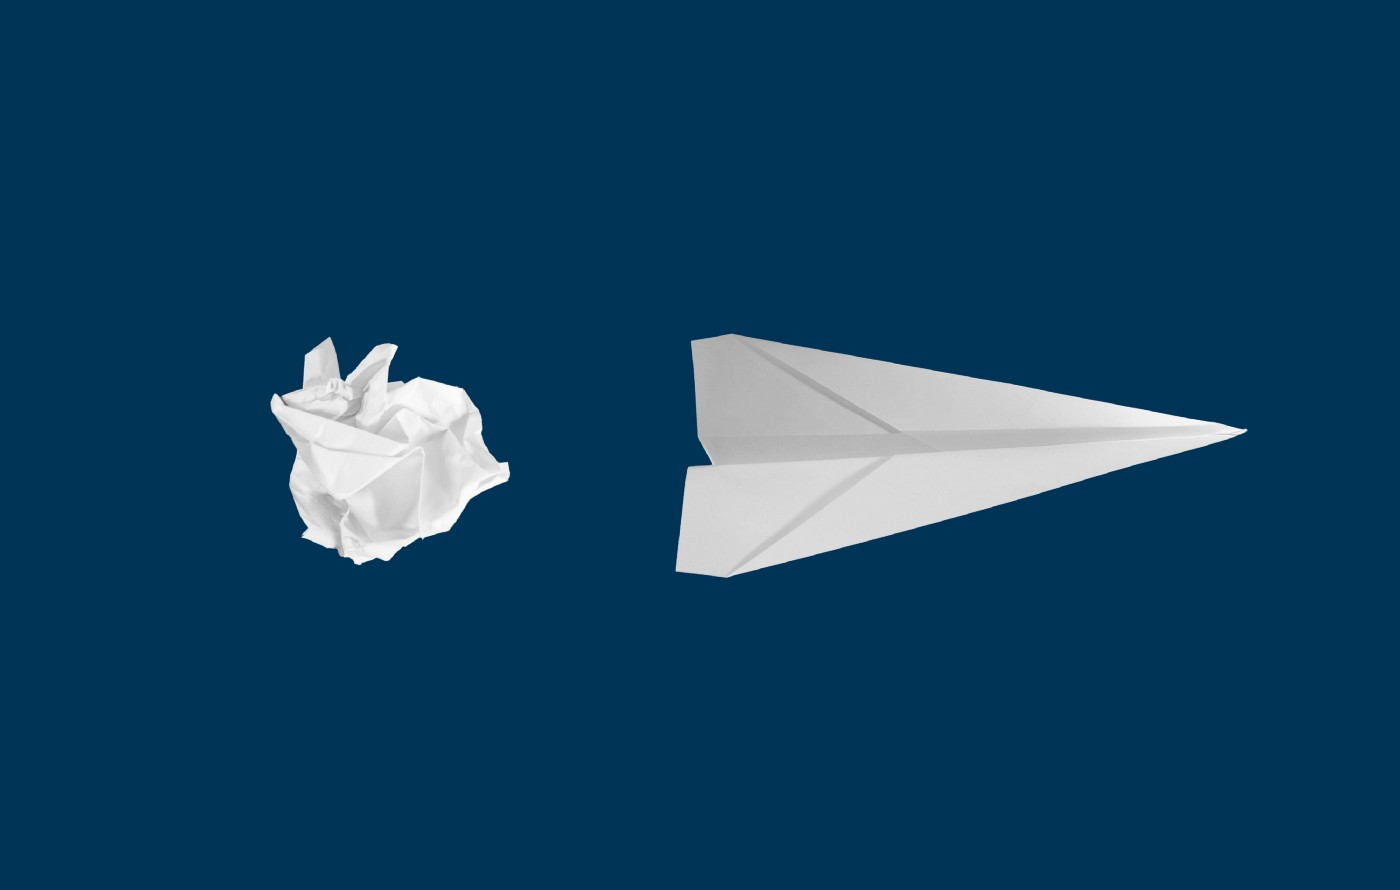 Crumpled paper next to a paper airplane